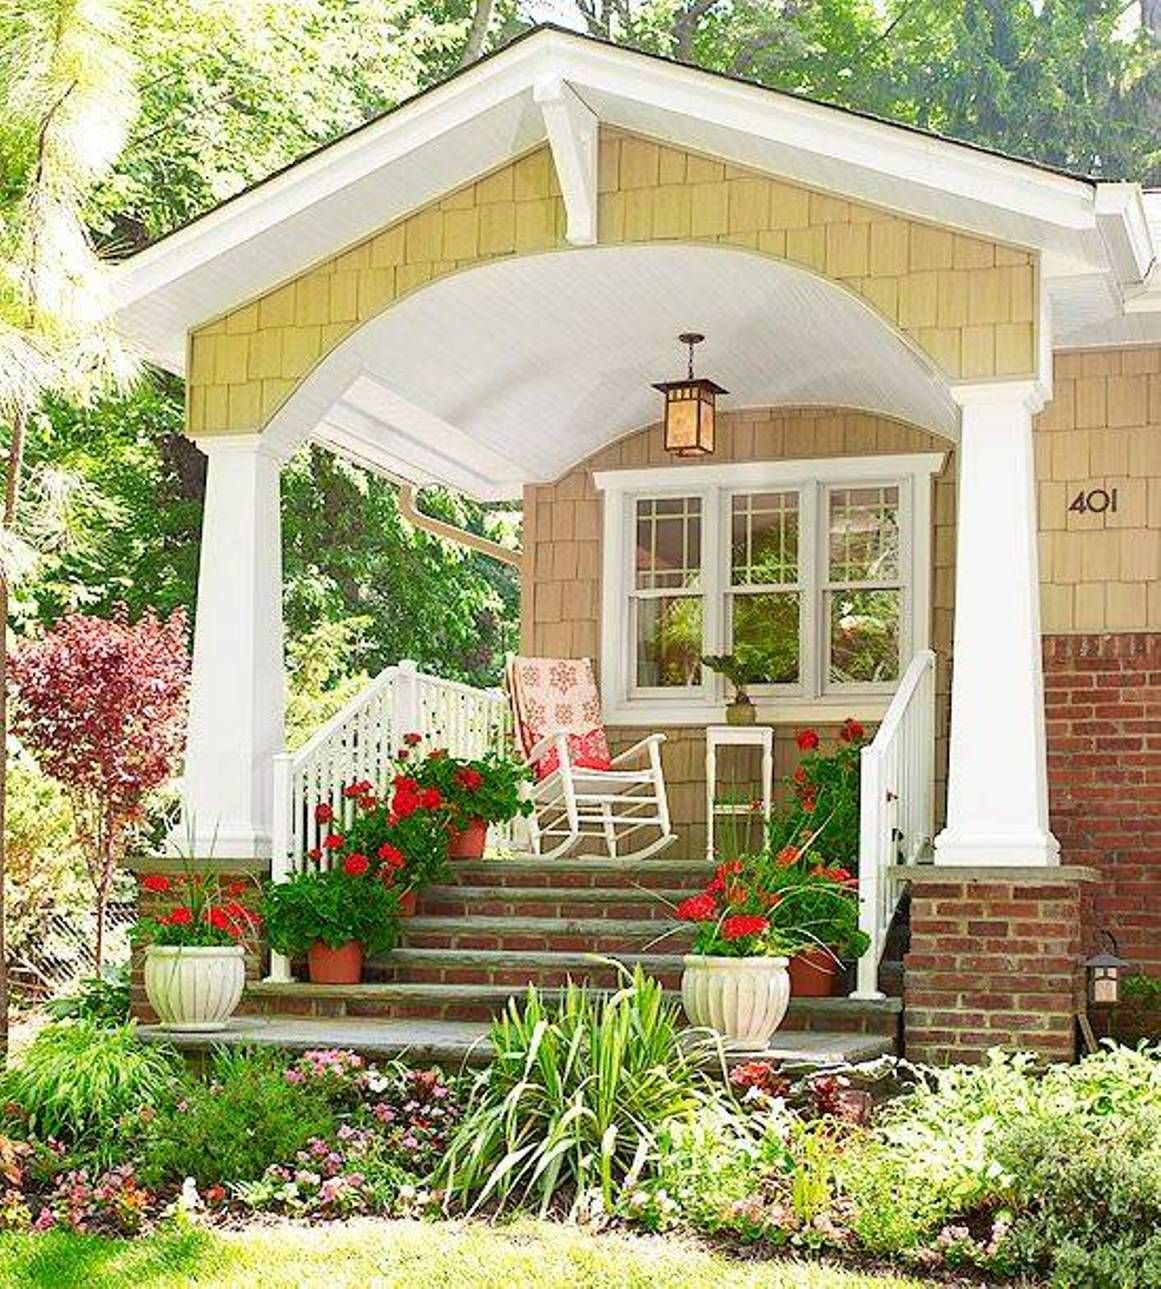 Landscaping And Outdoor Building , Home Front Porch Designs : House Porch  Design With Brick Steps